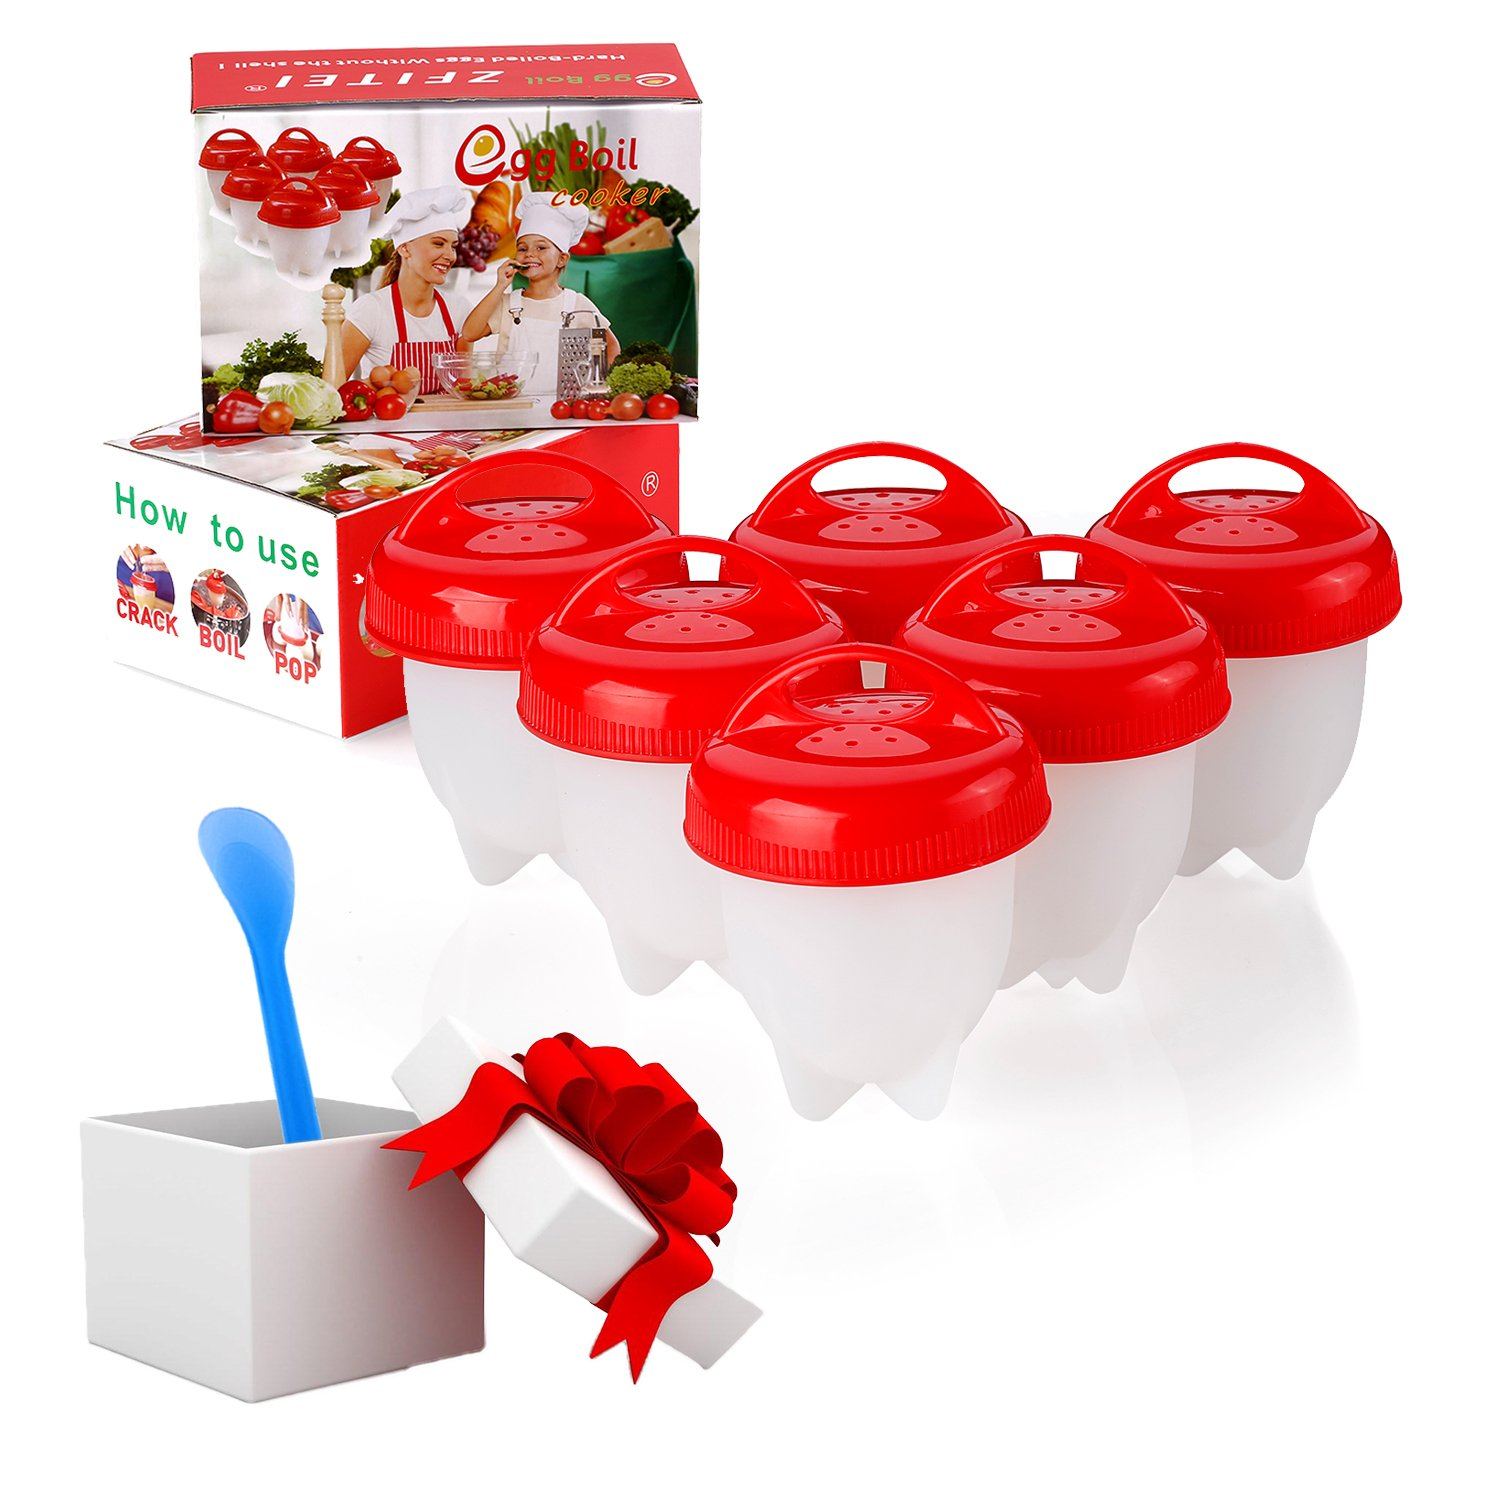 Upgrade Version egg cooker 6pack, ⚠☛Add cooker+HOLDER to cart, buy together=Get FREE holder❤ Boiled Eggs No shell,hard&Soft Maker,NO-BPA,Non Stick Silicon,by ZFITEI